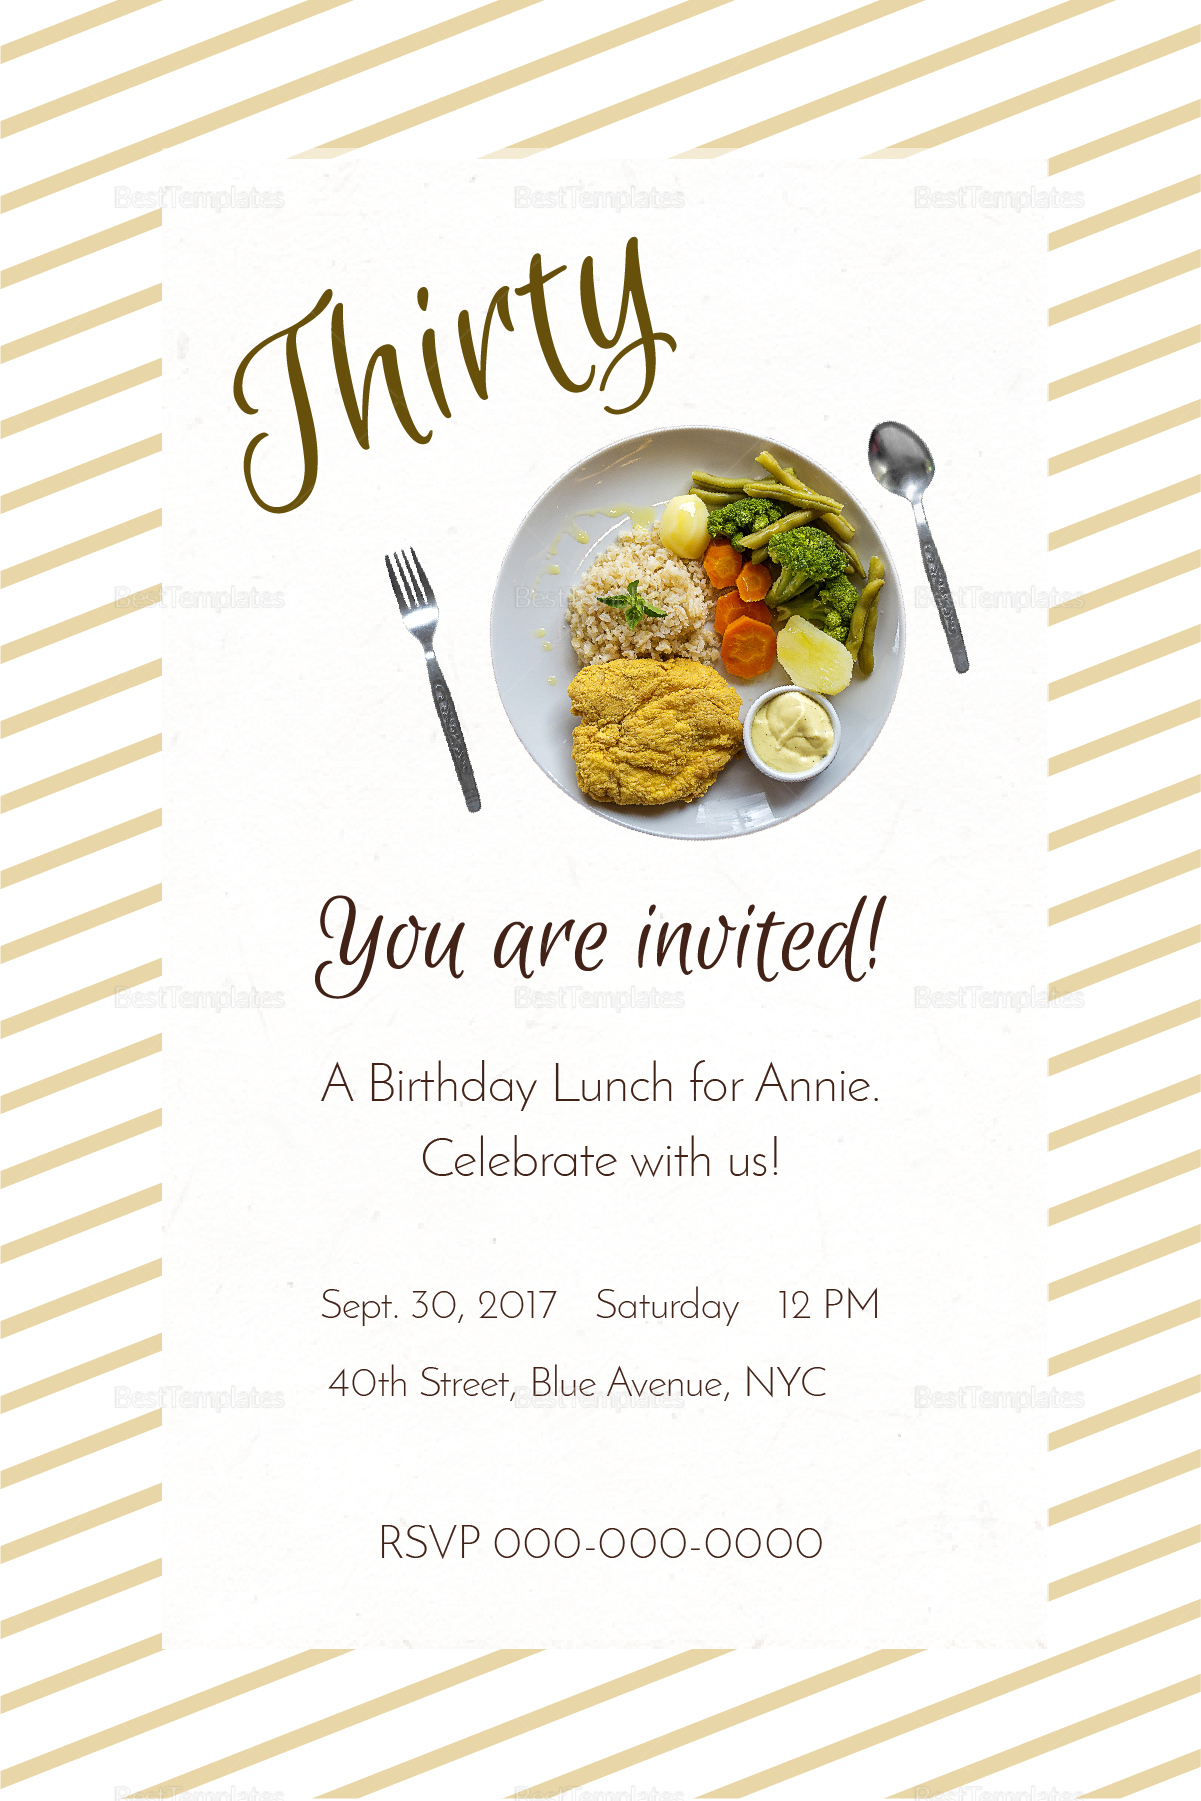 birthday lunch invitation design template in psd word publisher illustrator indesign. Black Bedroom Furniture Sets. Home Design Ideas